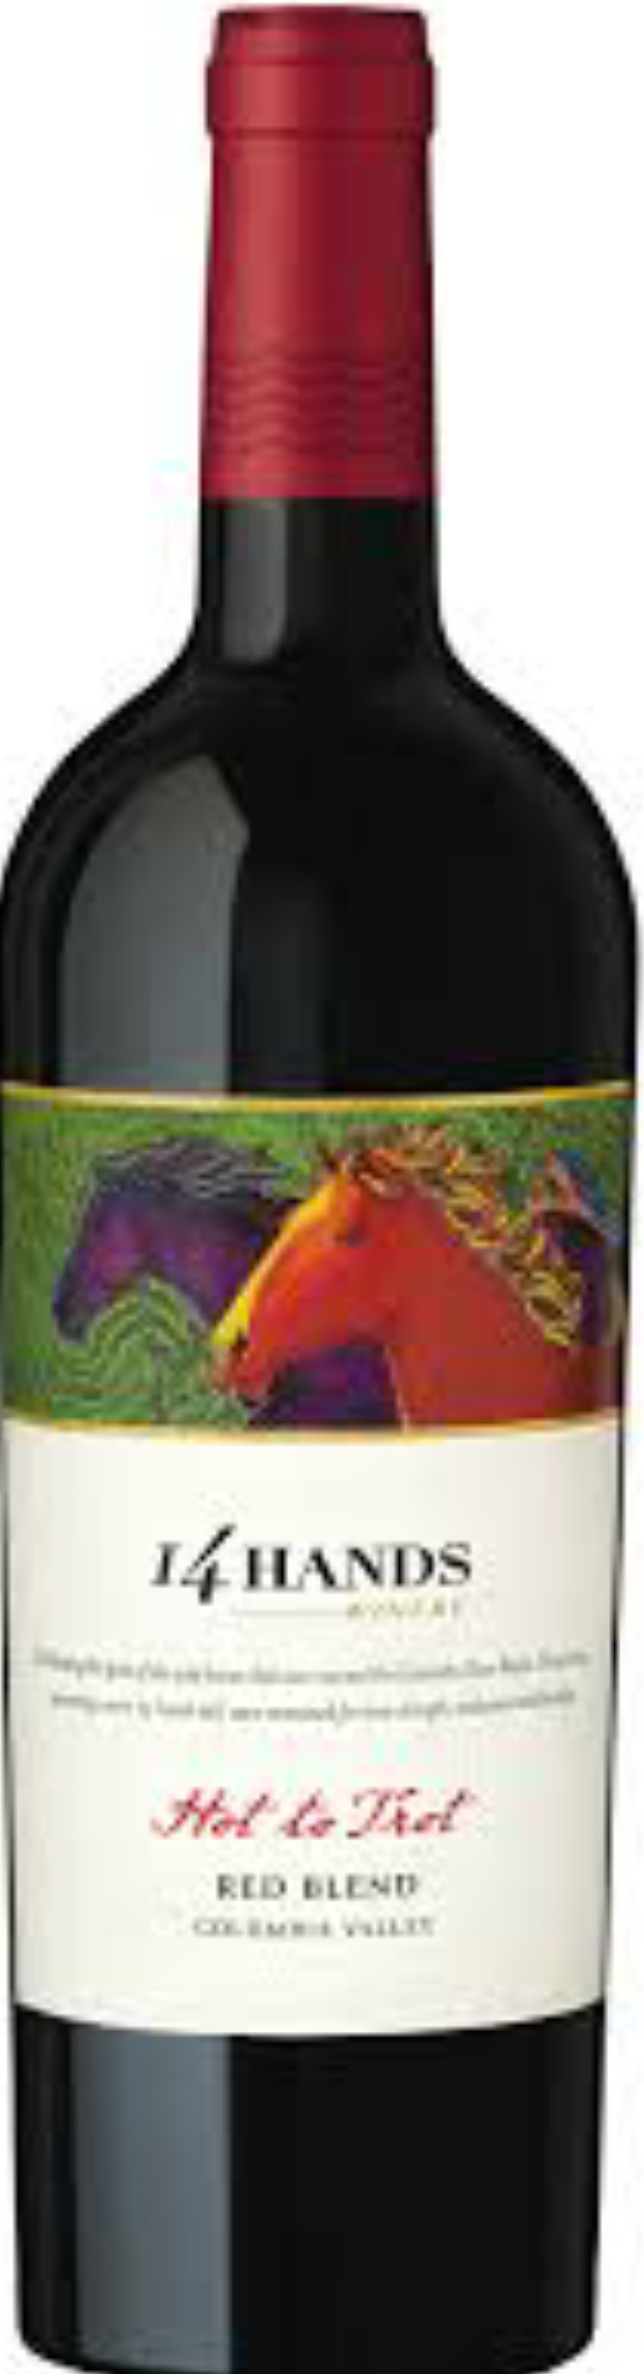 14 Hands Hot To Trot Red 750ml